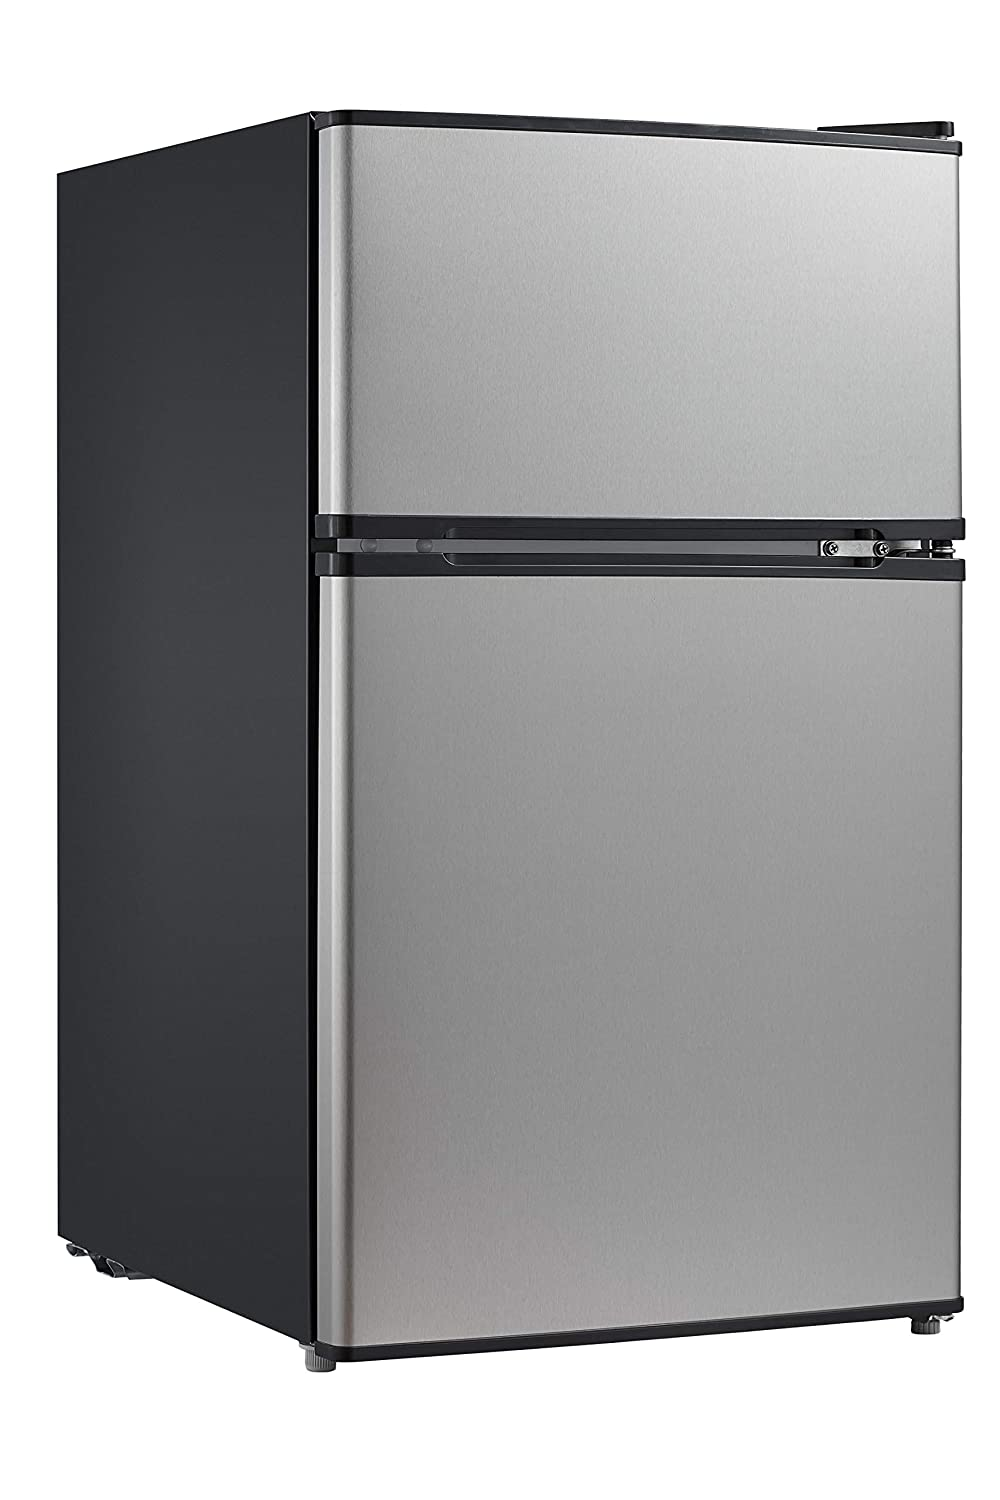 Midea WHD-113FSS1 Stainless Steel